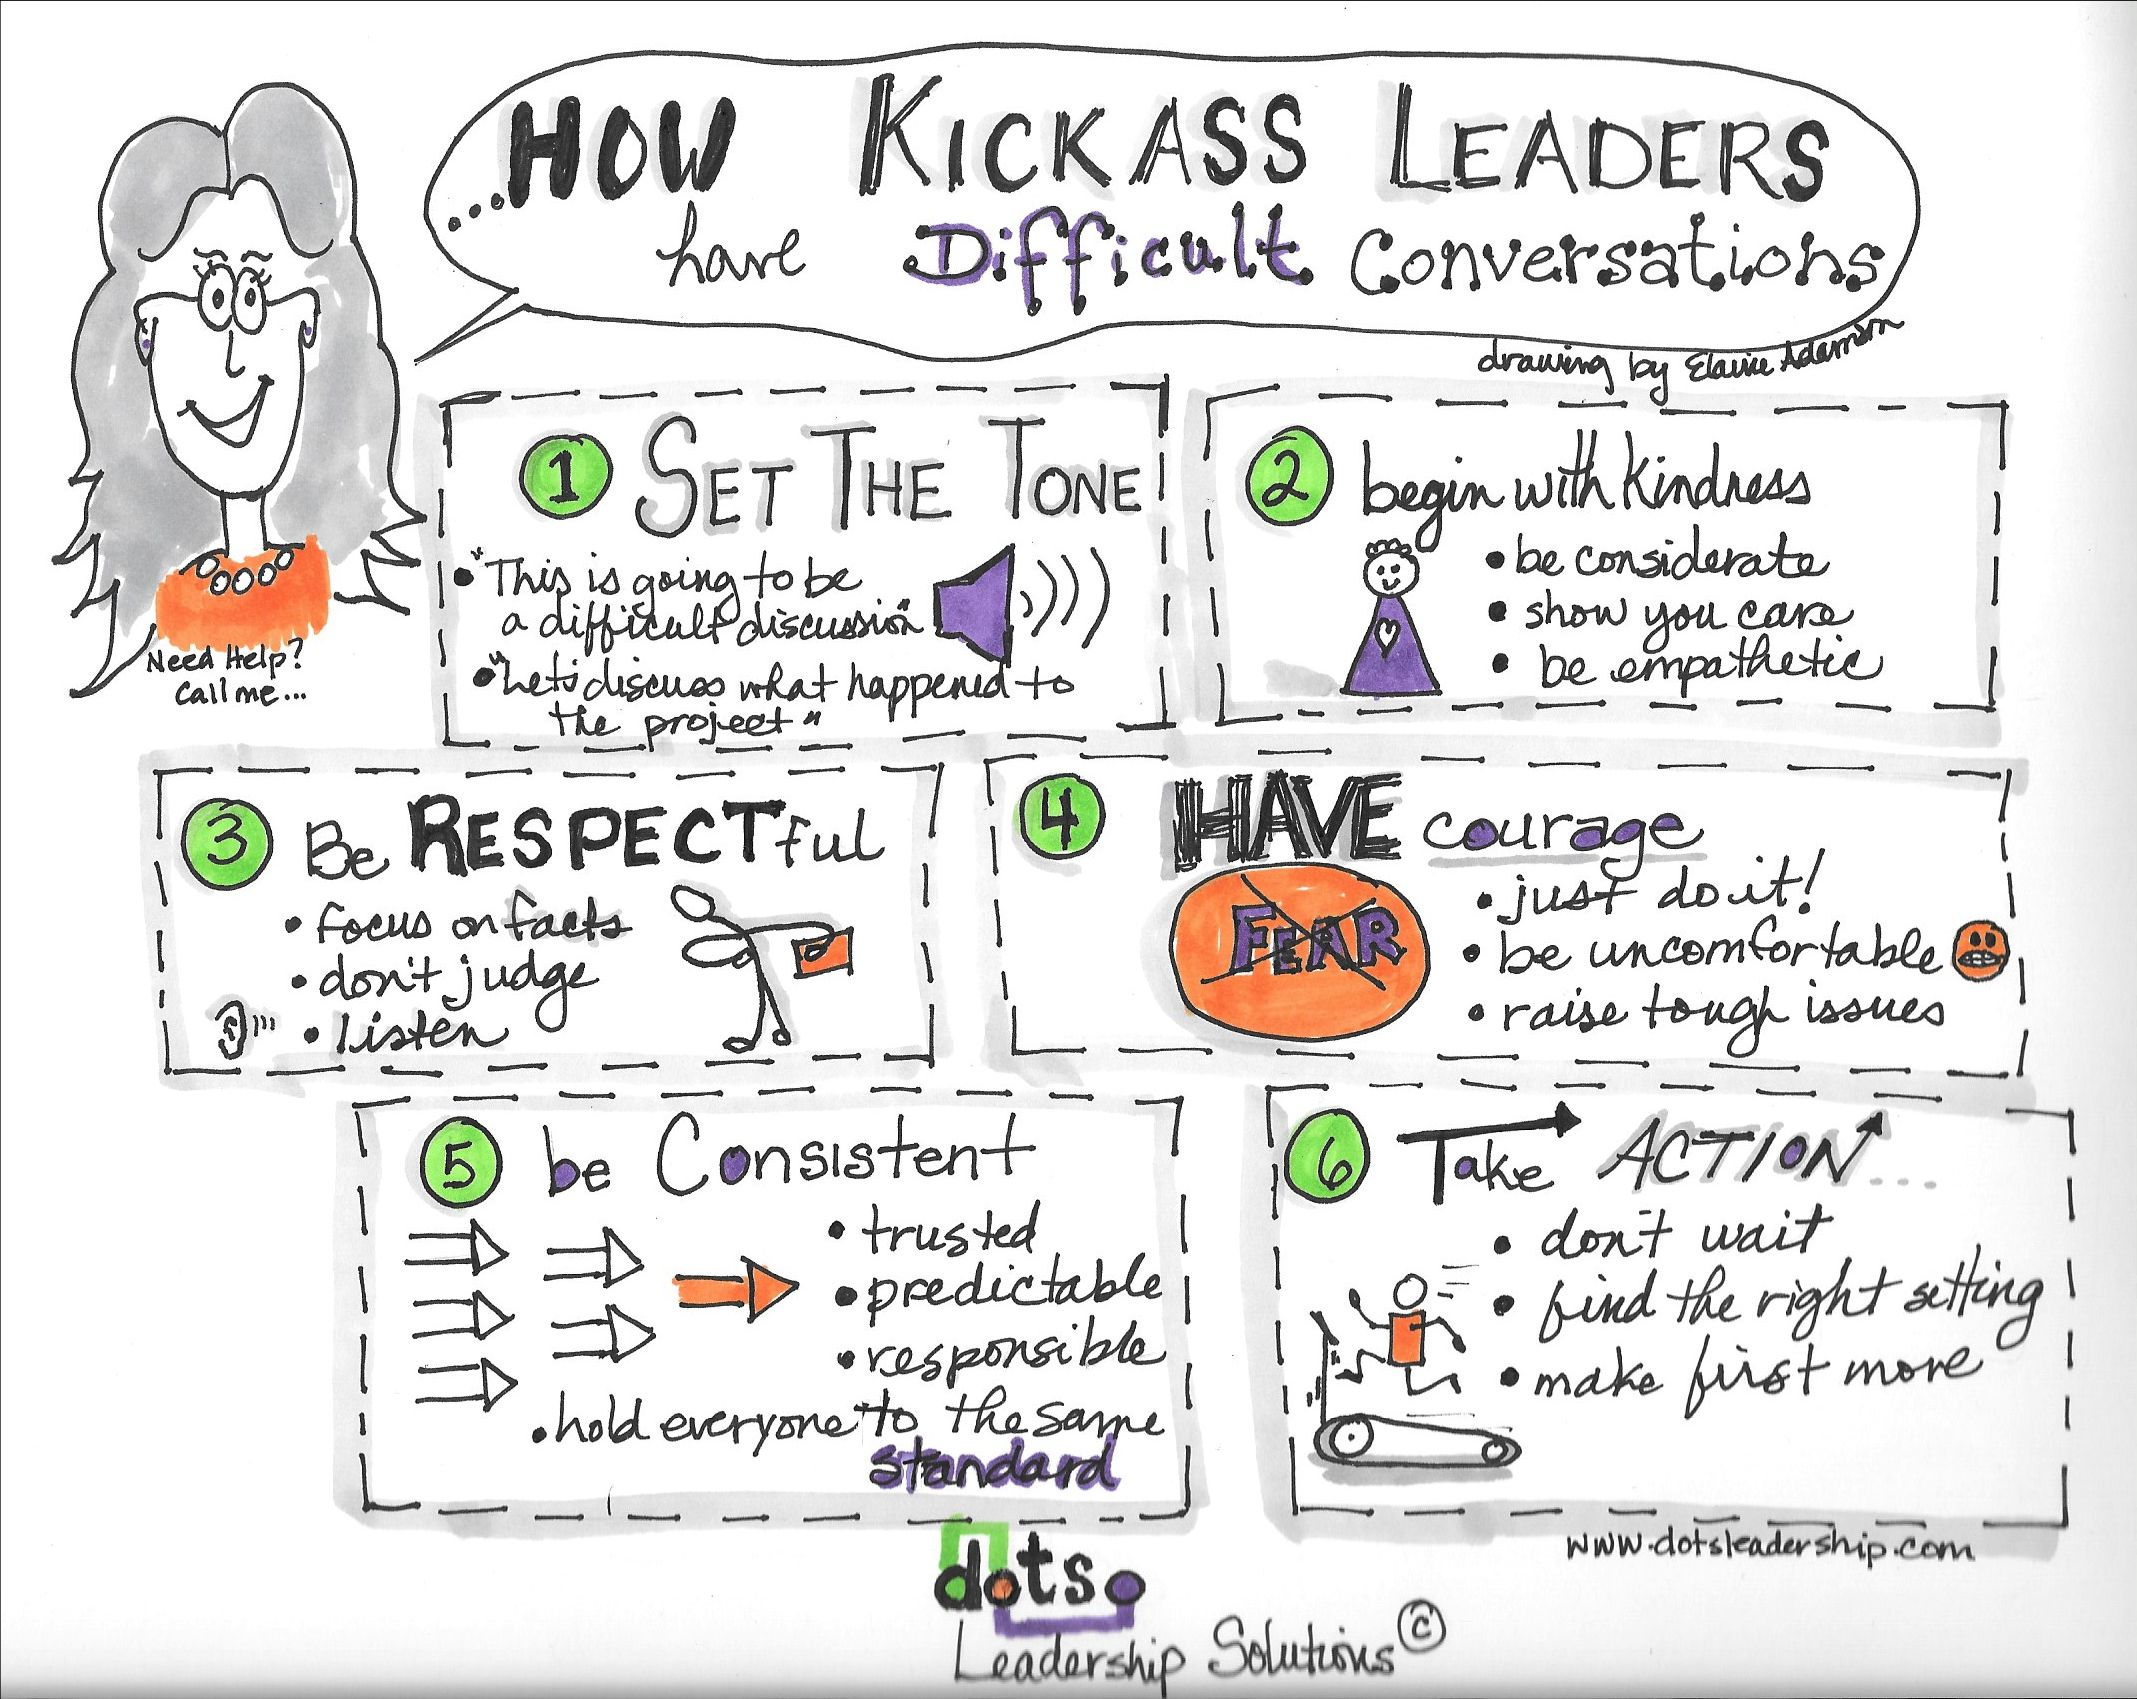 How Kick A Leaders Have Difficult Conversations